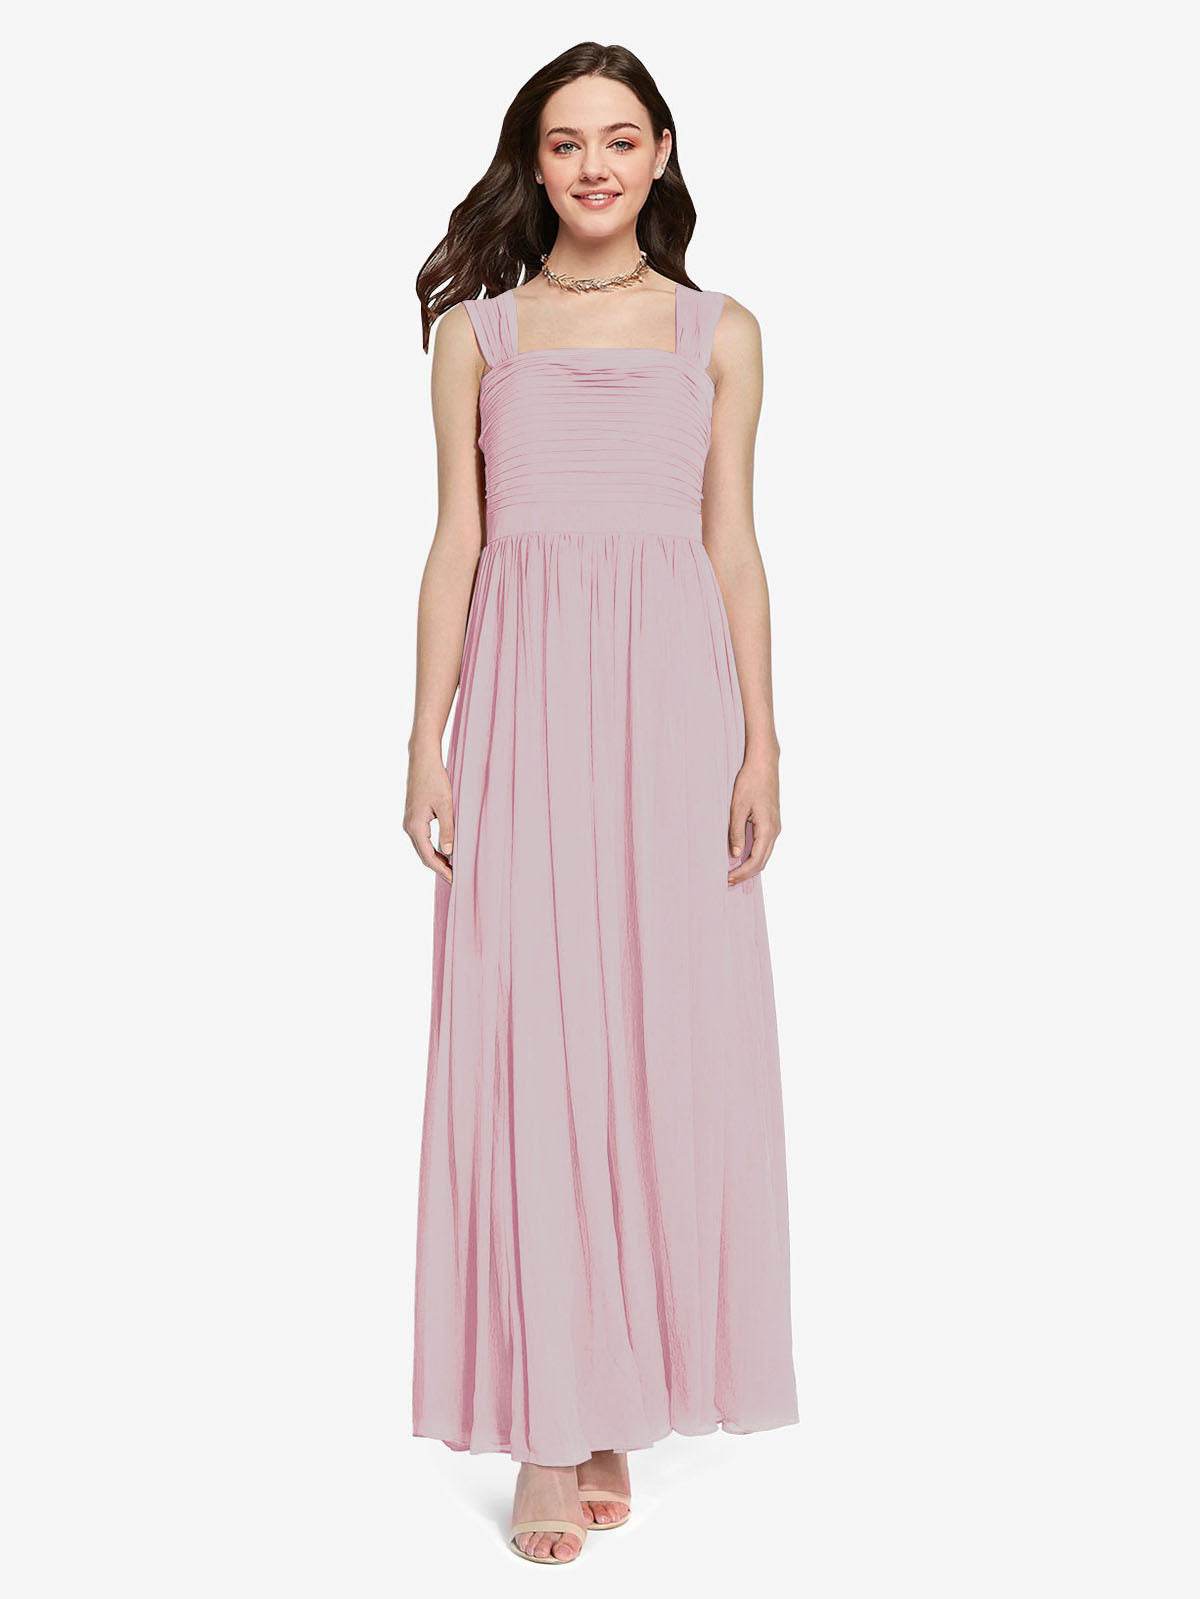 Long A-Line Square Sleeveless Primrose Chiffon Bridesmaid Dress Aldridge